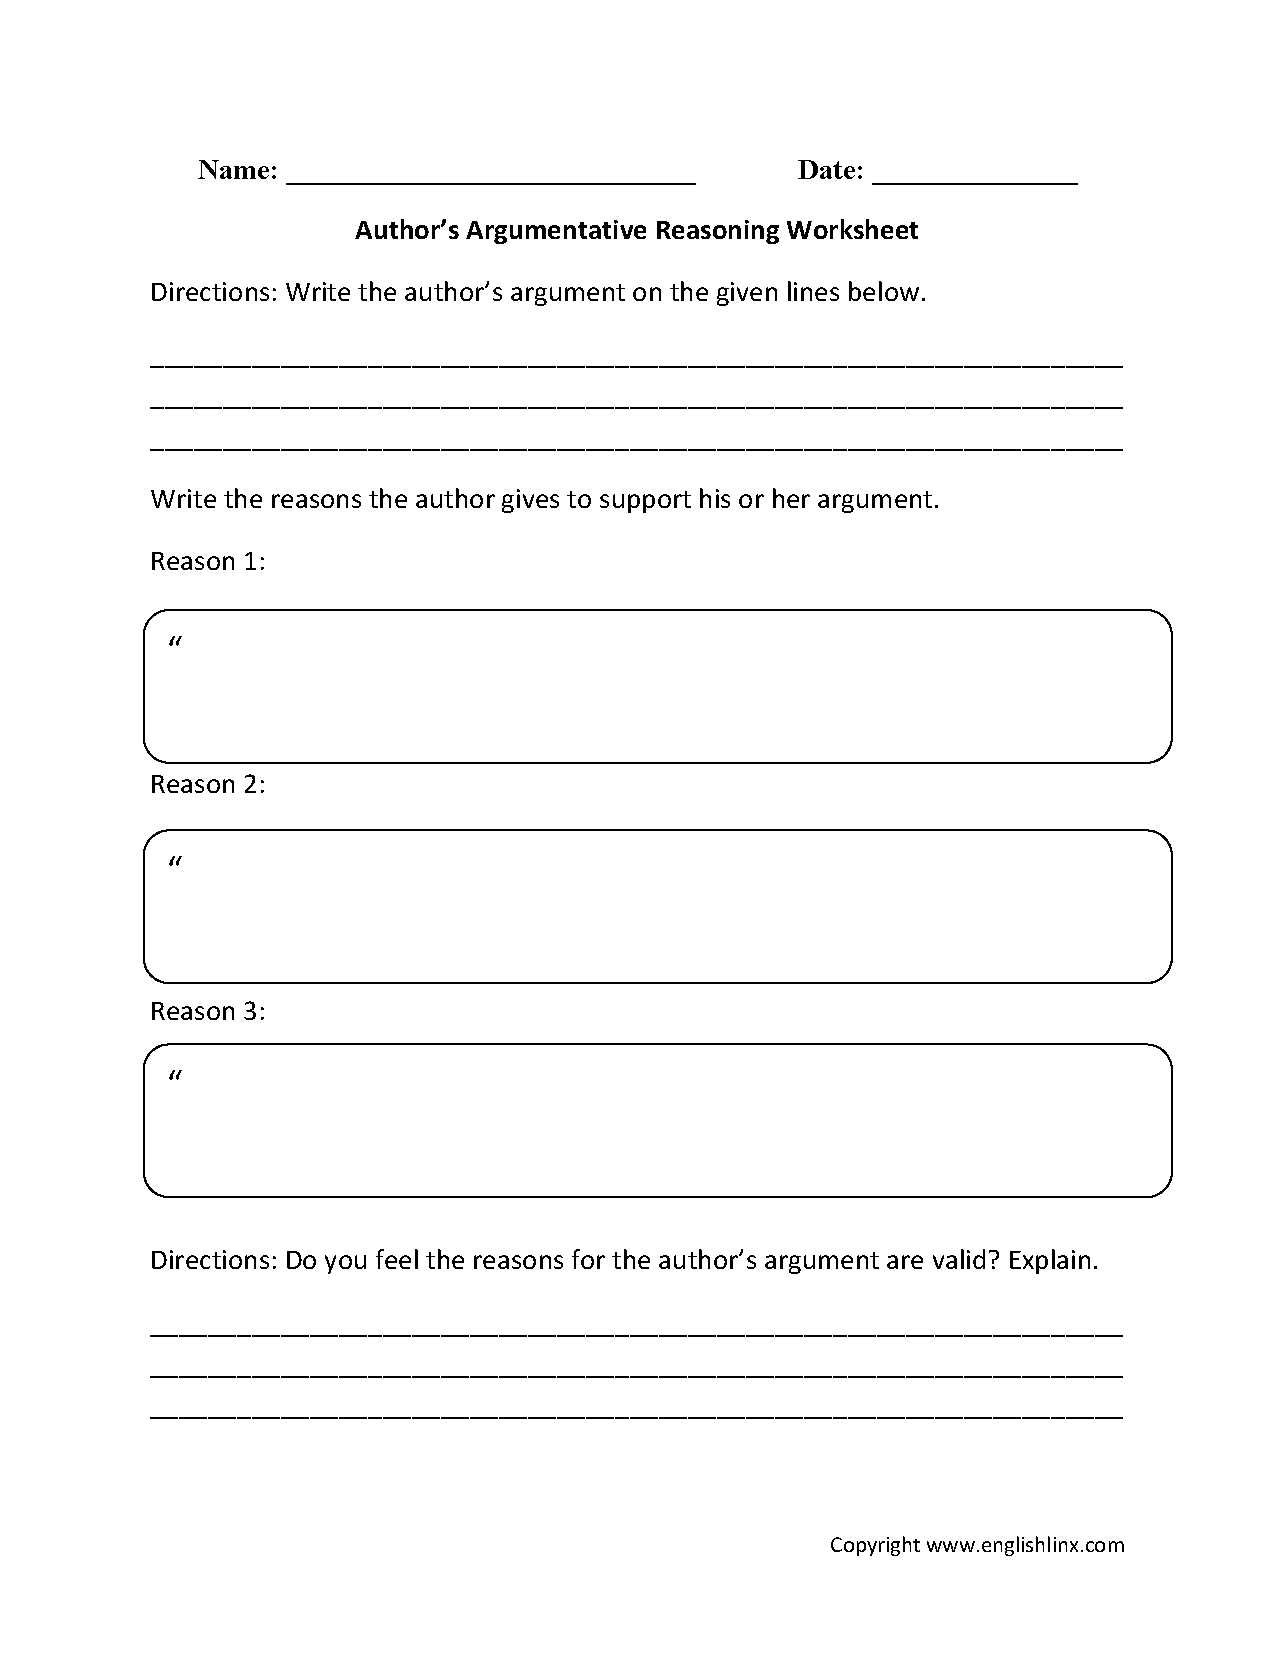 Worksheets 10th Grade Reading Comprehension Worksheets reading comprehension worksheets authors argumentative worksheets